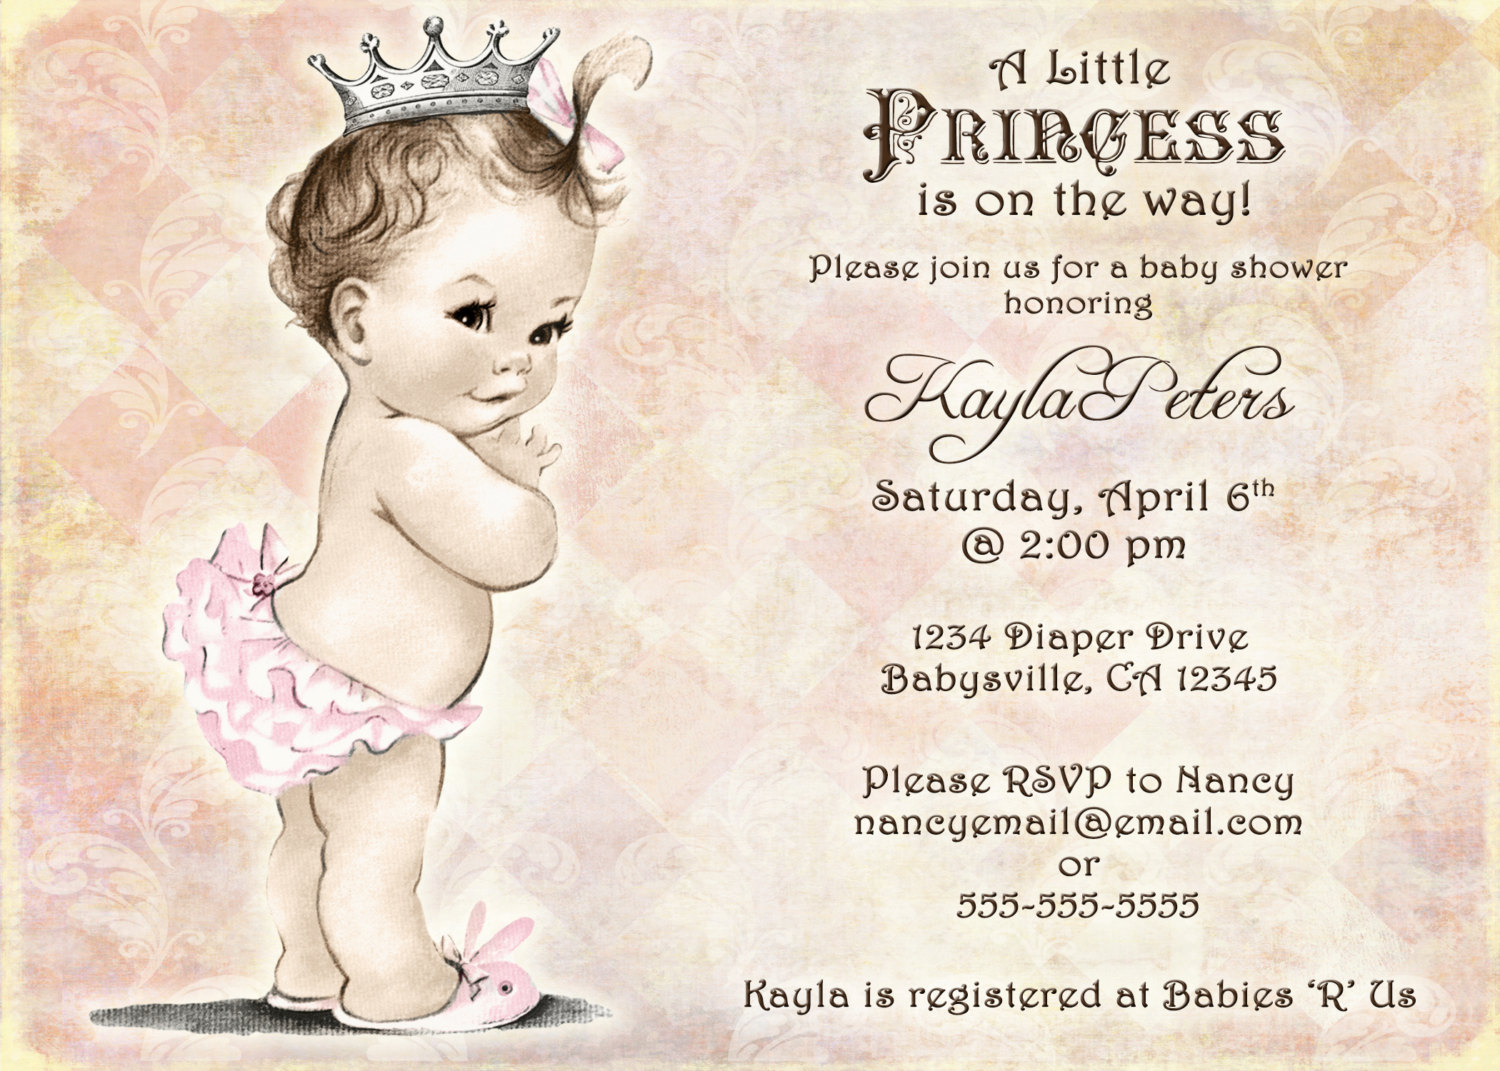 Full Size of Baby Shower:baby Shower Invitations For Boys Homemade Baby Shower Decorations Baby Shower Ideas Nursery Themes For Girls Baby Boy Shower Ideas Themes For Baby Girl Nursery Baby Shower Themes Baby Shower Themes For Girls